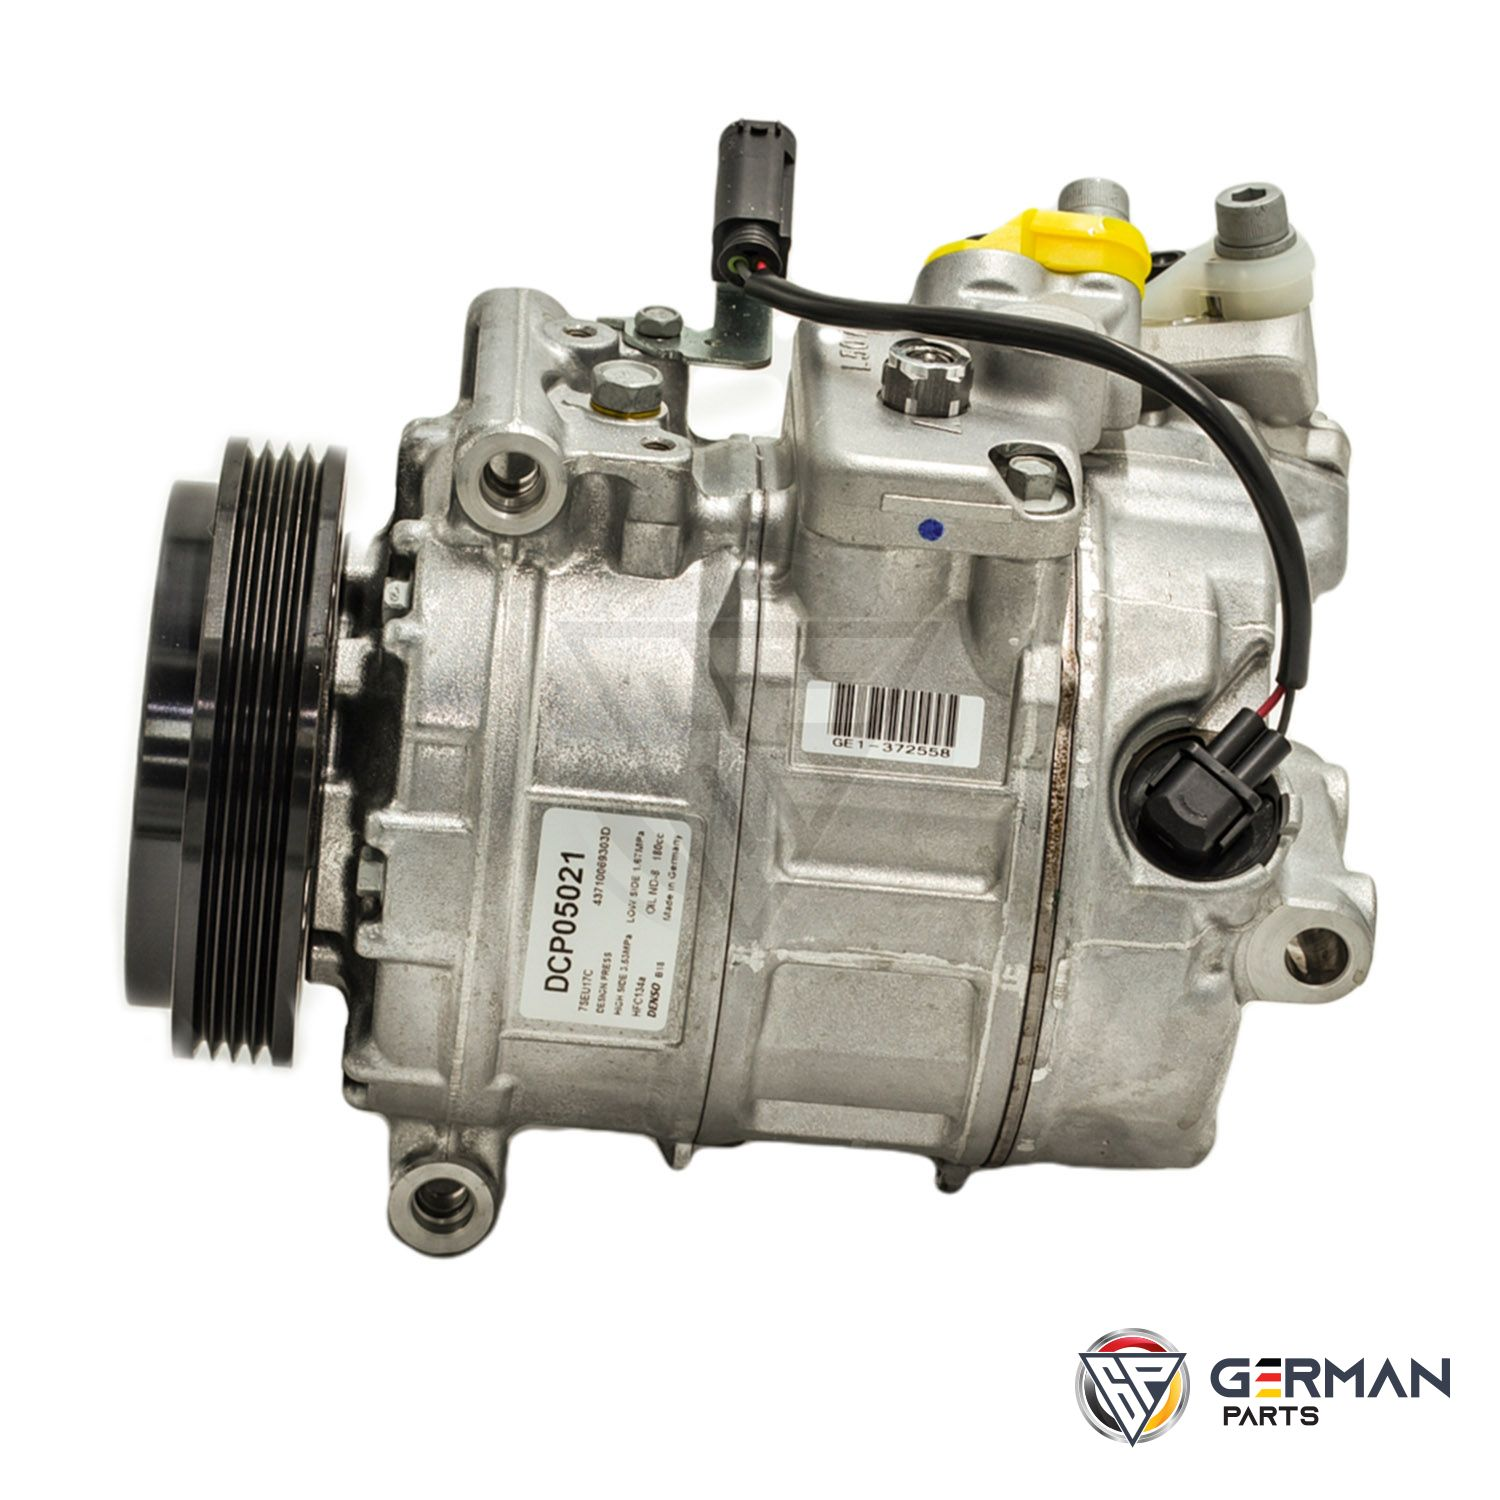 Buy Denso Ac Compressor 64529175670 - German Parts